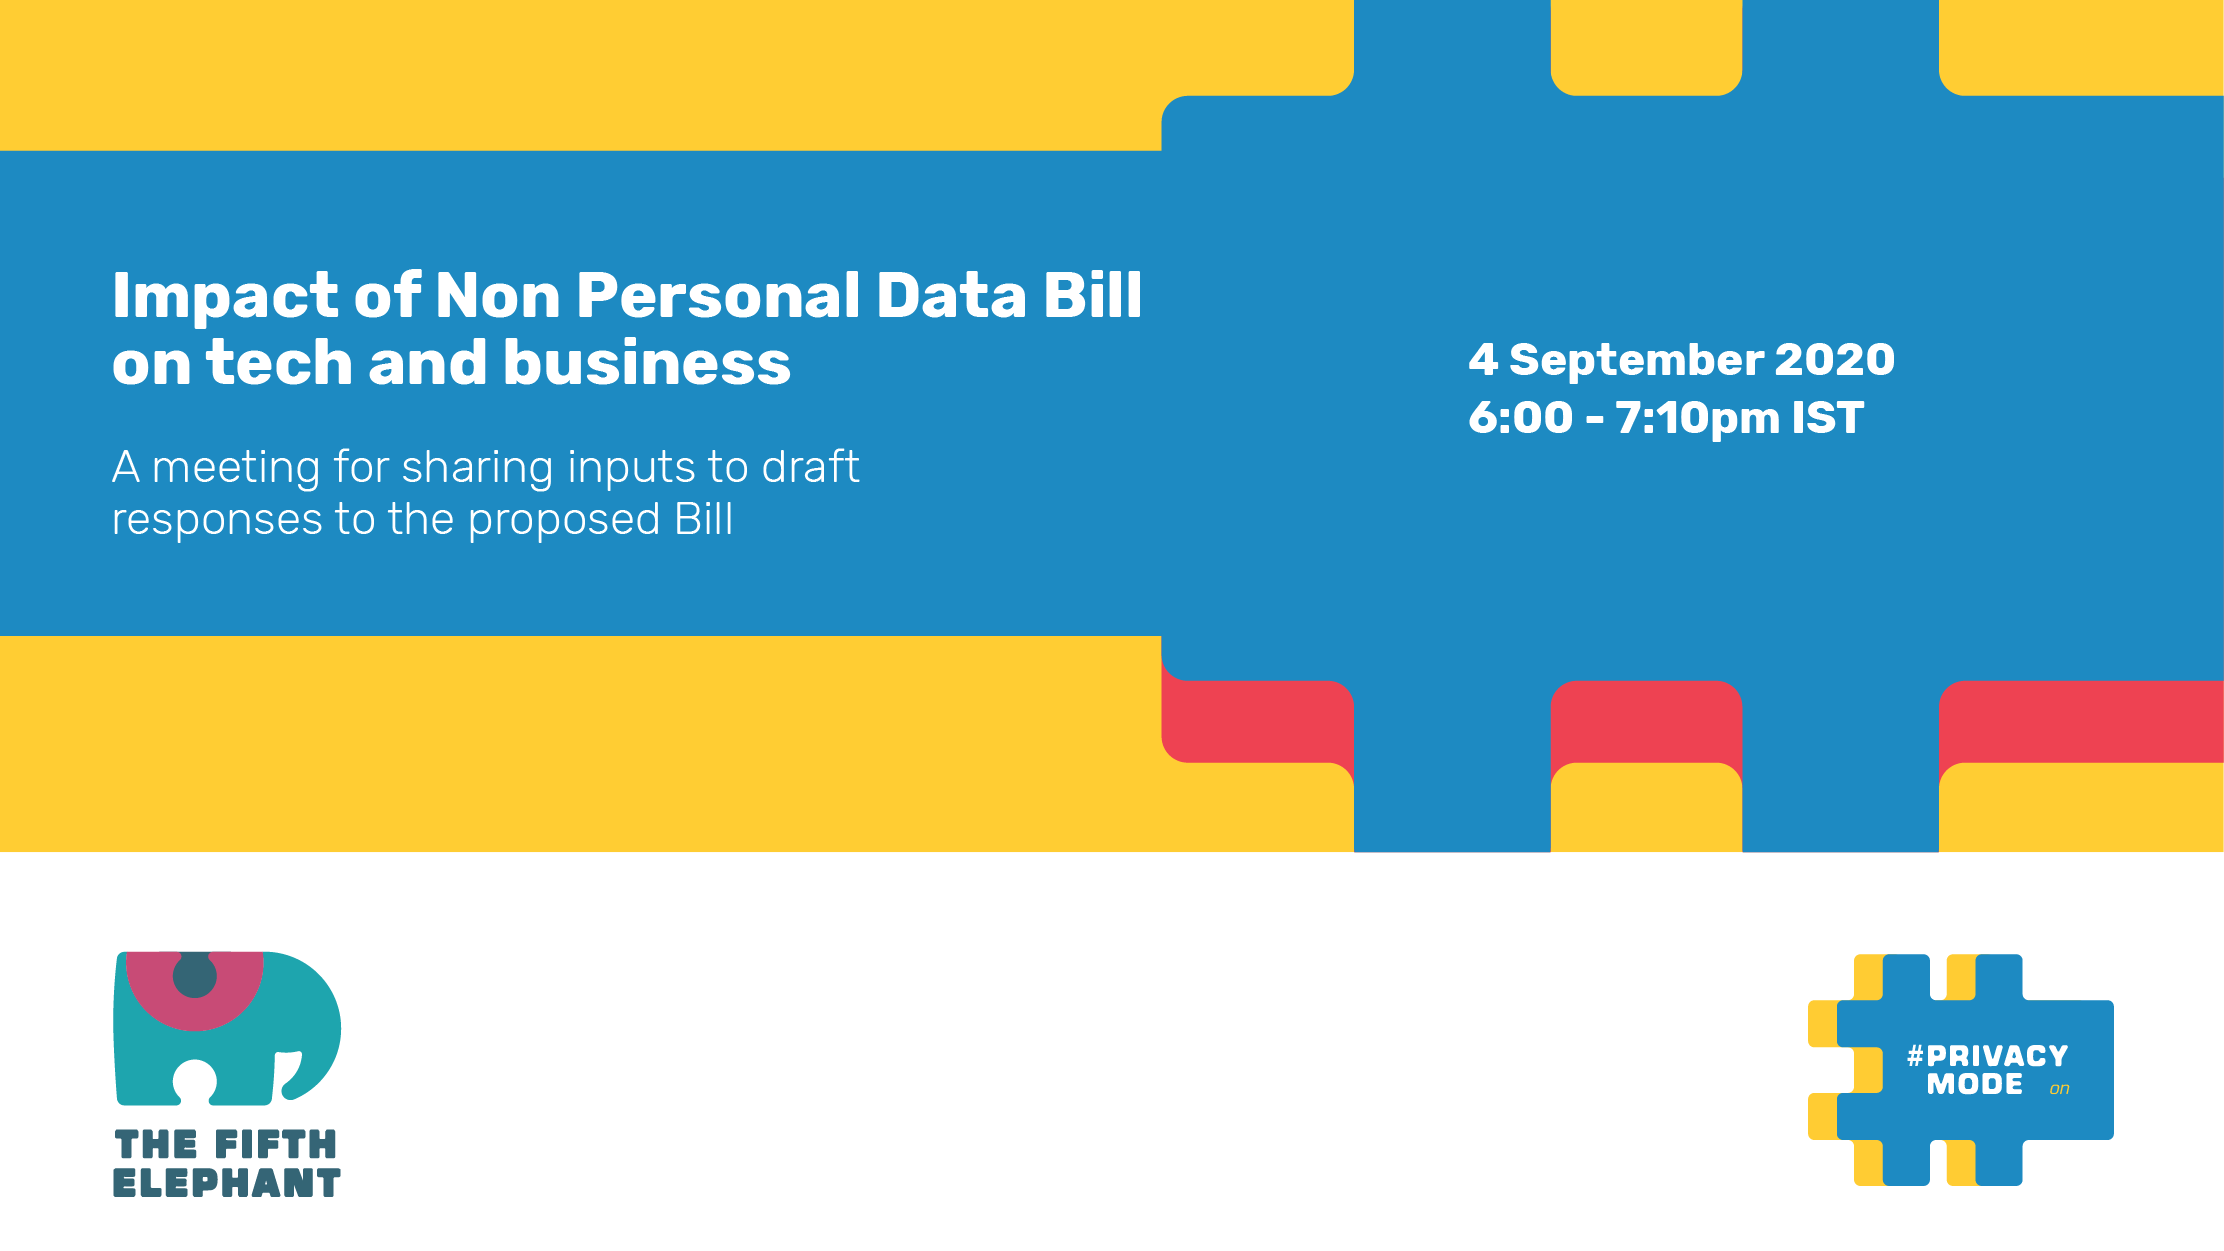 Impact of Non Personal Data Bill on tech and business